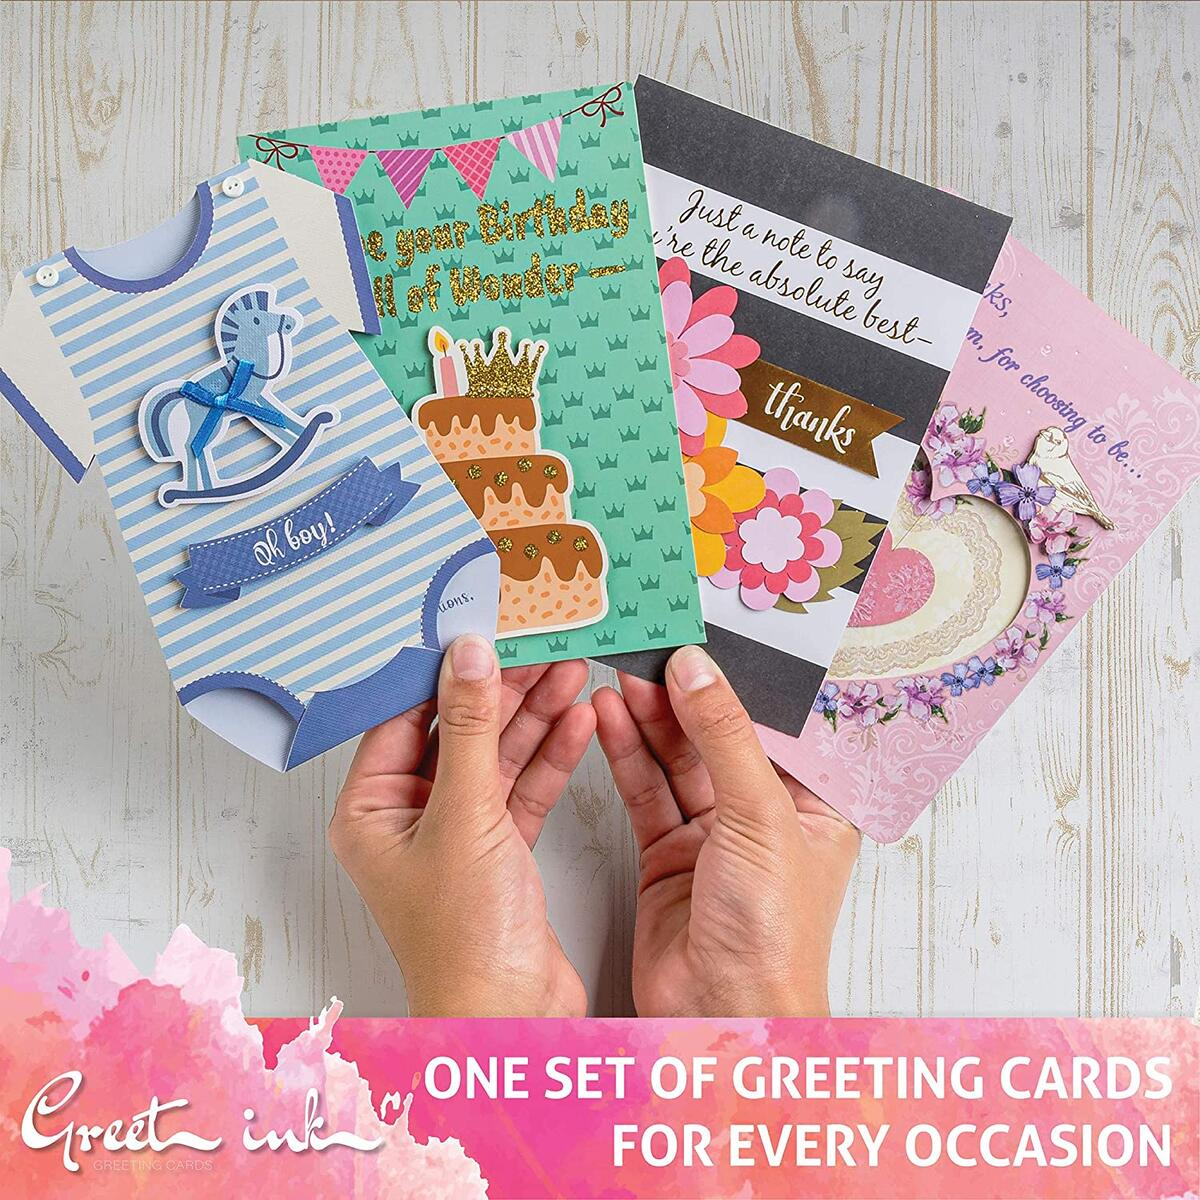 GreetInk Handmade All Occasion Greeting Cards - 22 Pack - Boxed Assorted cards with Envelopes For Birthday, Thank You, Wedding, Thinking Of You, Mother's Day, Condolence, Congratulations, Blank and Baby Shower cards